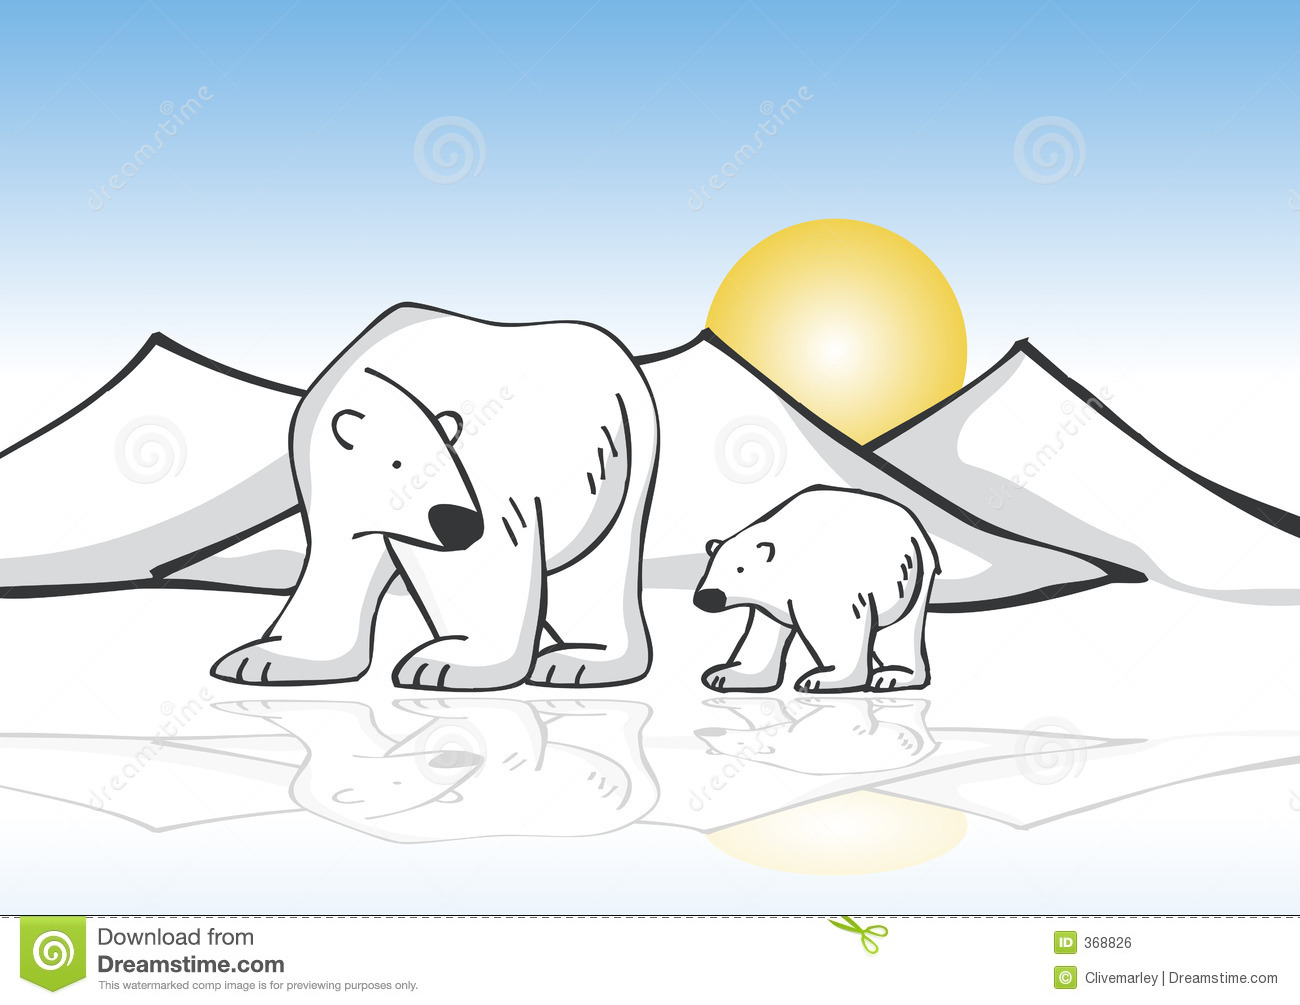 Polar Bear On Ice Clipart Wallpaper   Latest Auto News Update